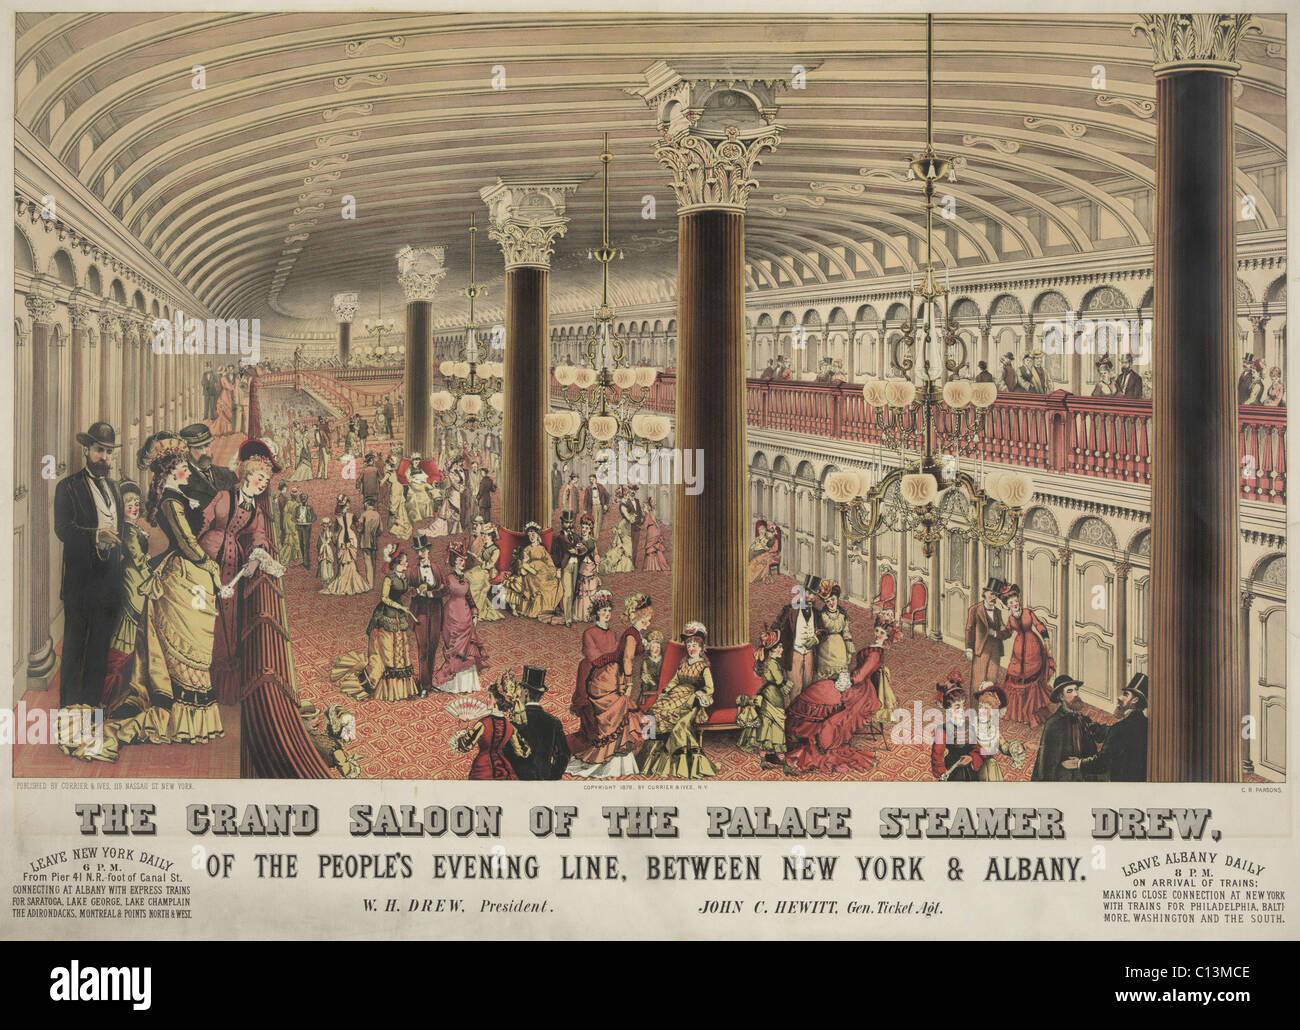 The grand saloon of the steamship CREW a steamboat that traveled on the Hudson River route from New York City to Stock Photo